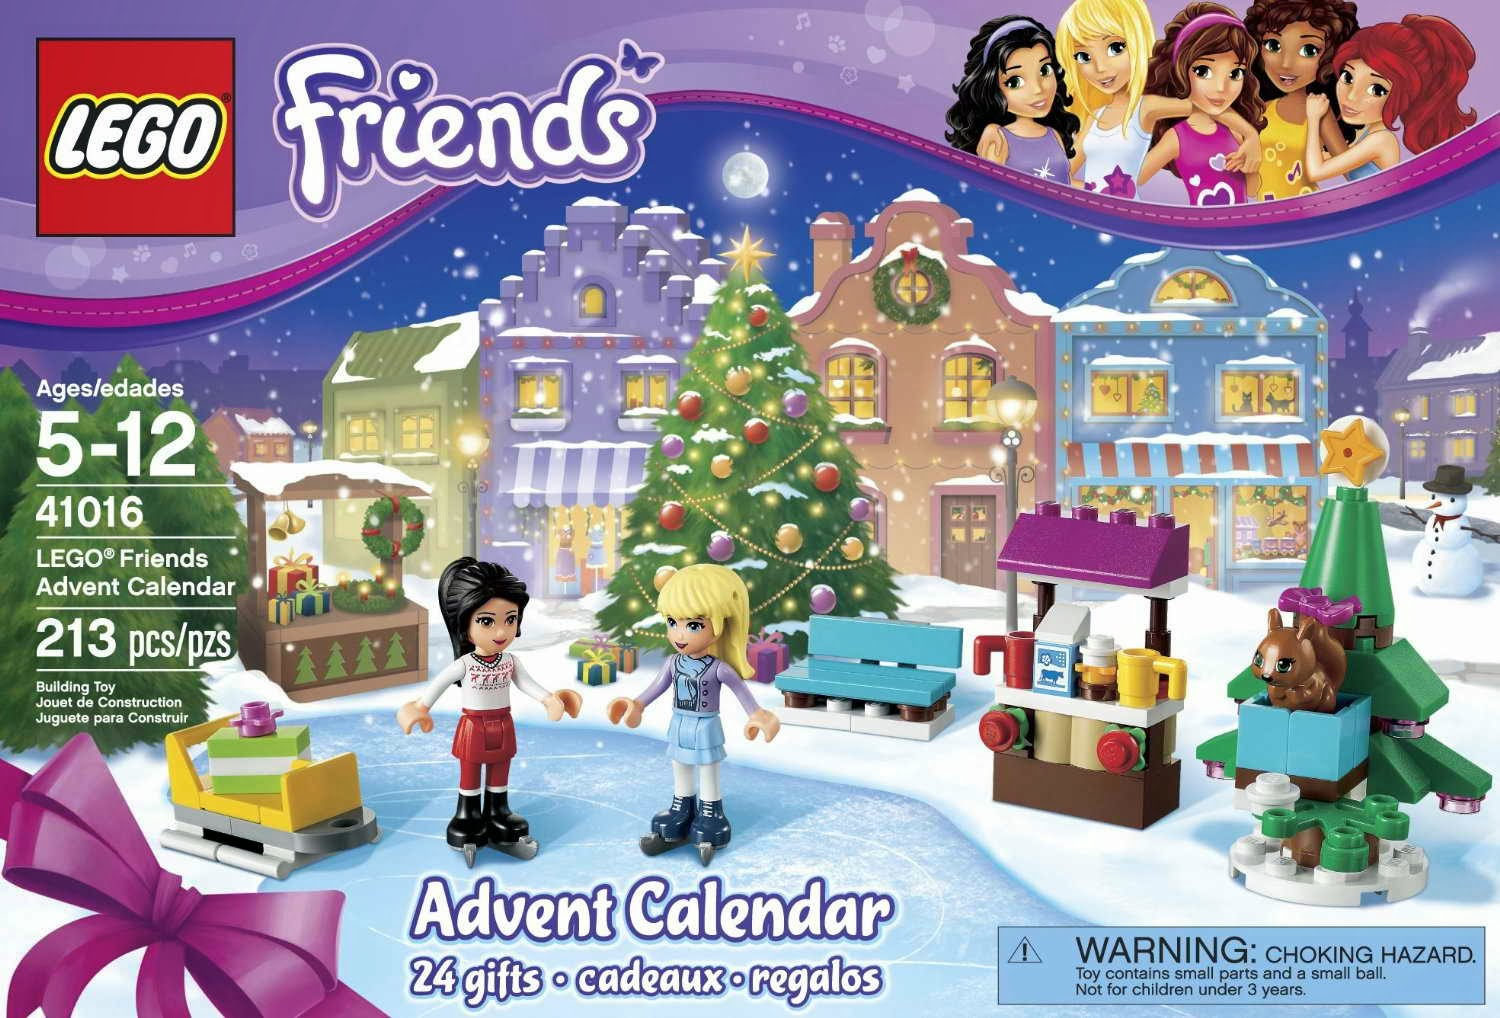 Brick Friends: LEGO 41016 LEGO Friends Advent Calendar